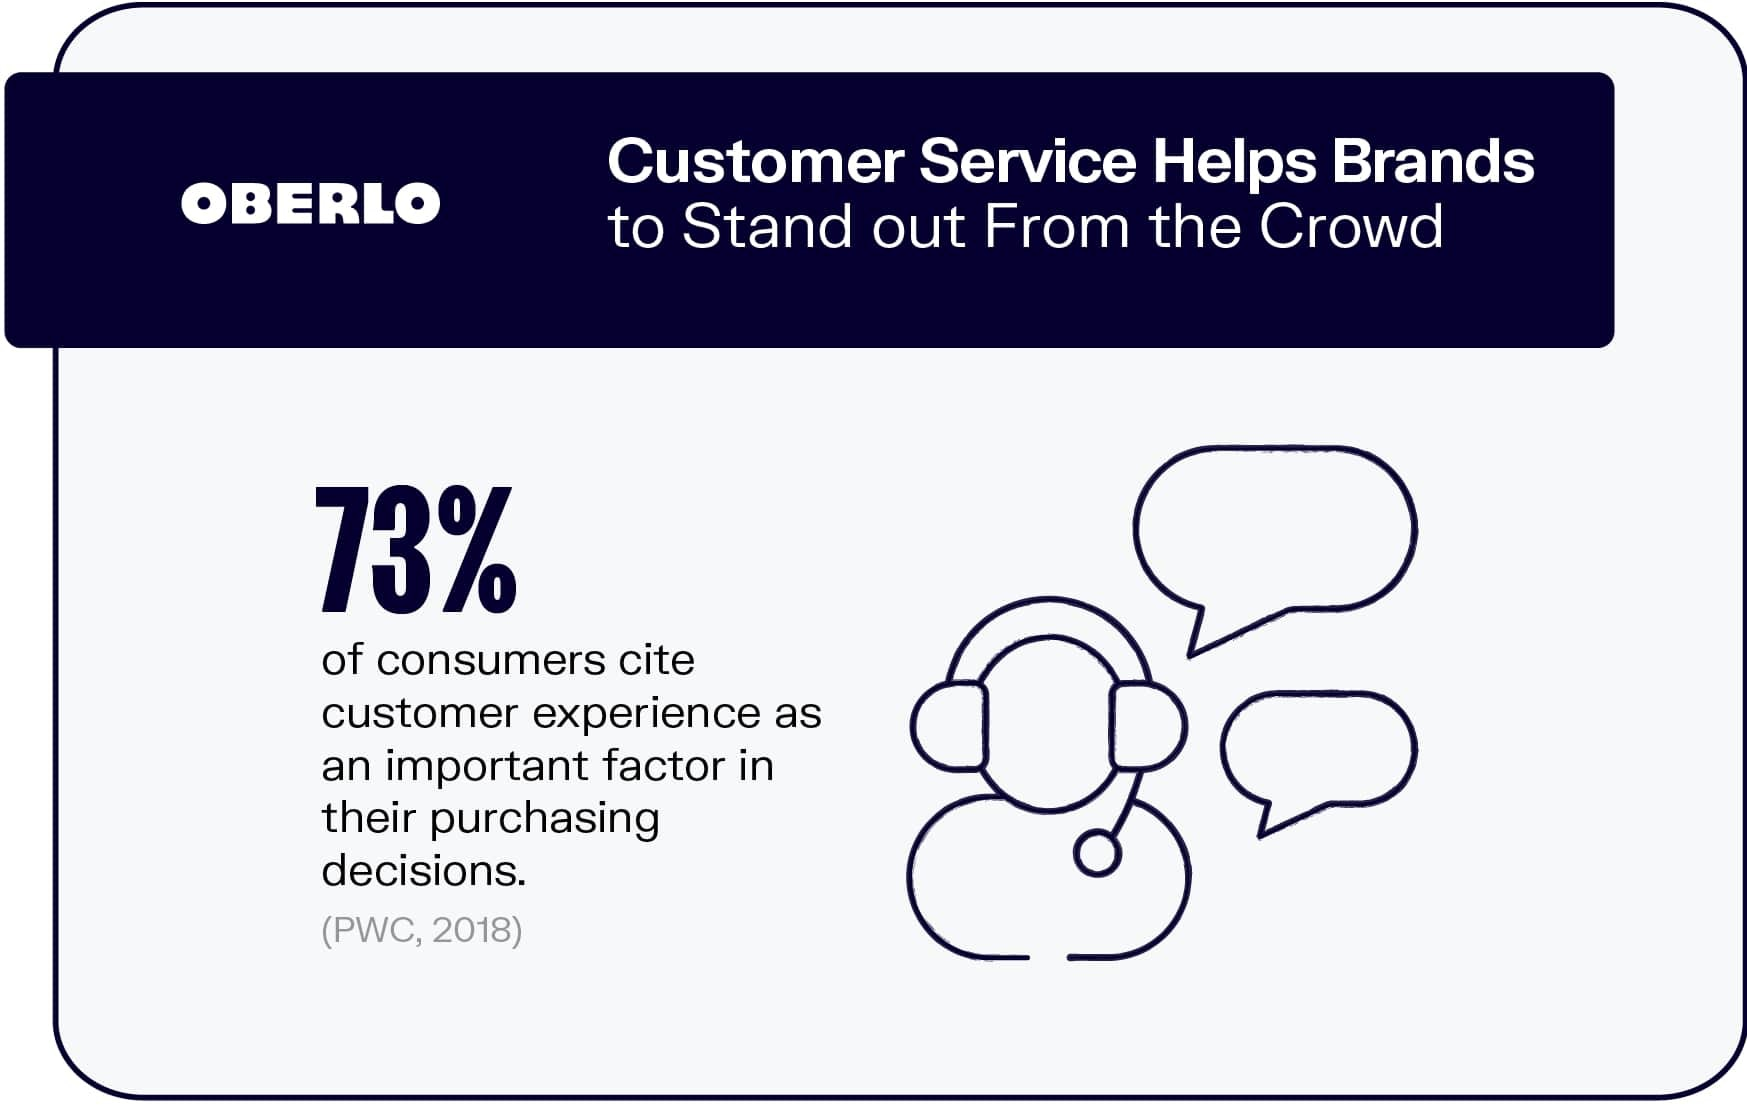 Customer Service Helps Brands to Stand out From the Crowd